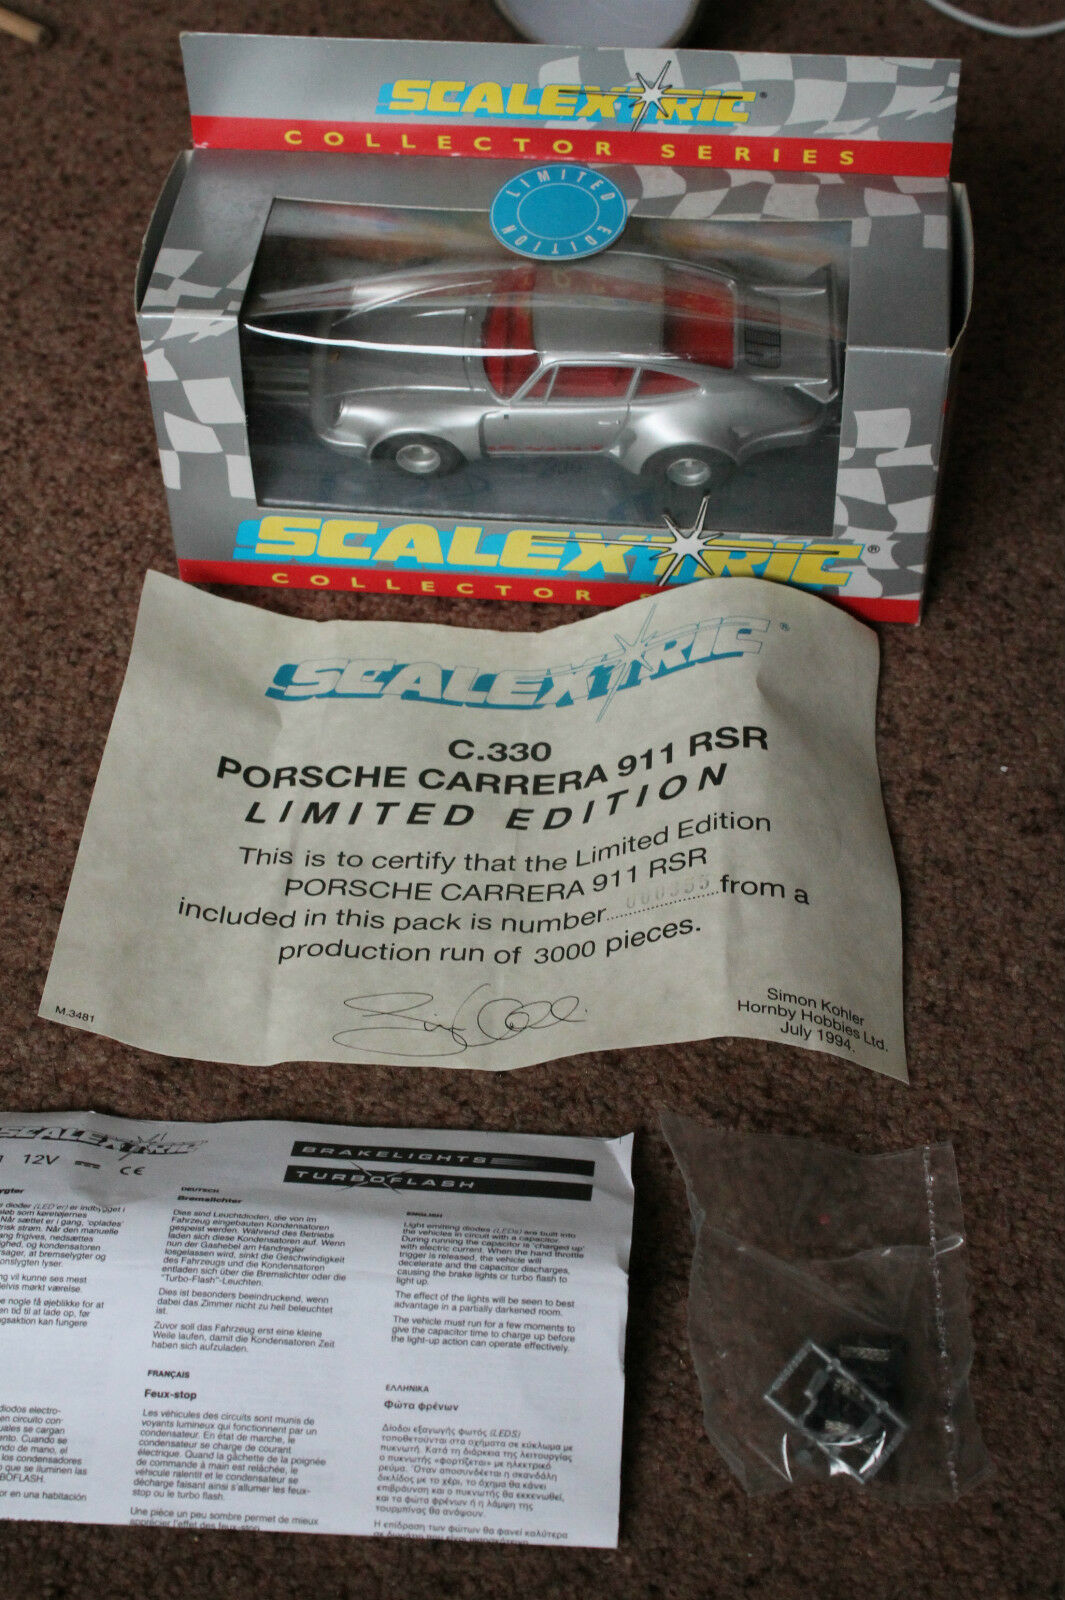 BOXED SCALEXTRIC C330 PORSCHE CARRERA 911 RSR LIMITED EDITION RARE MINT WITH COA